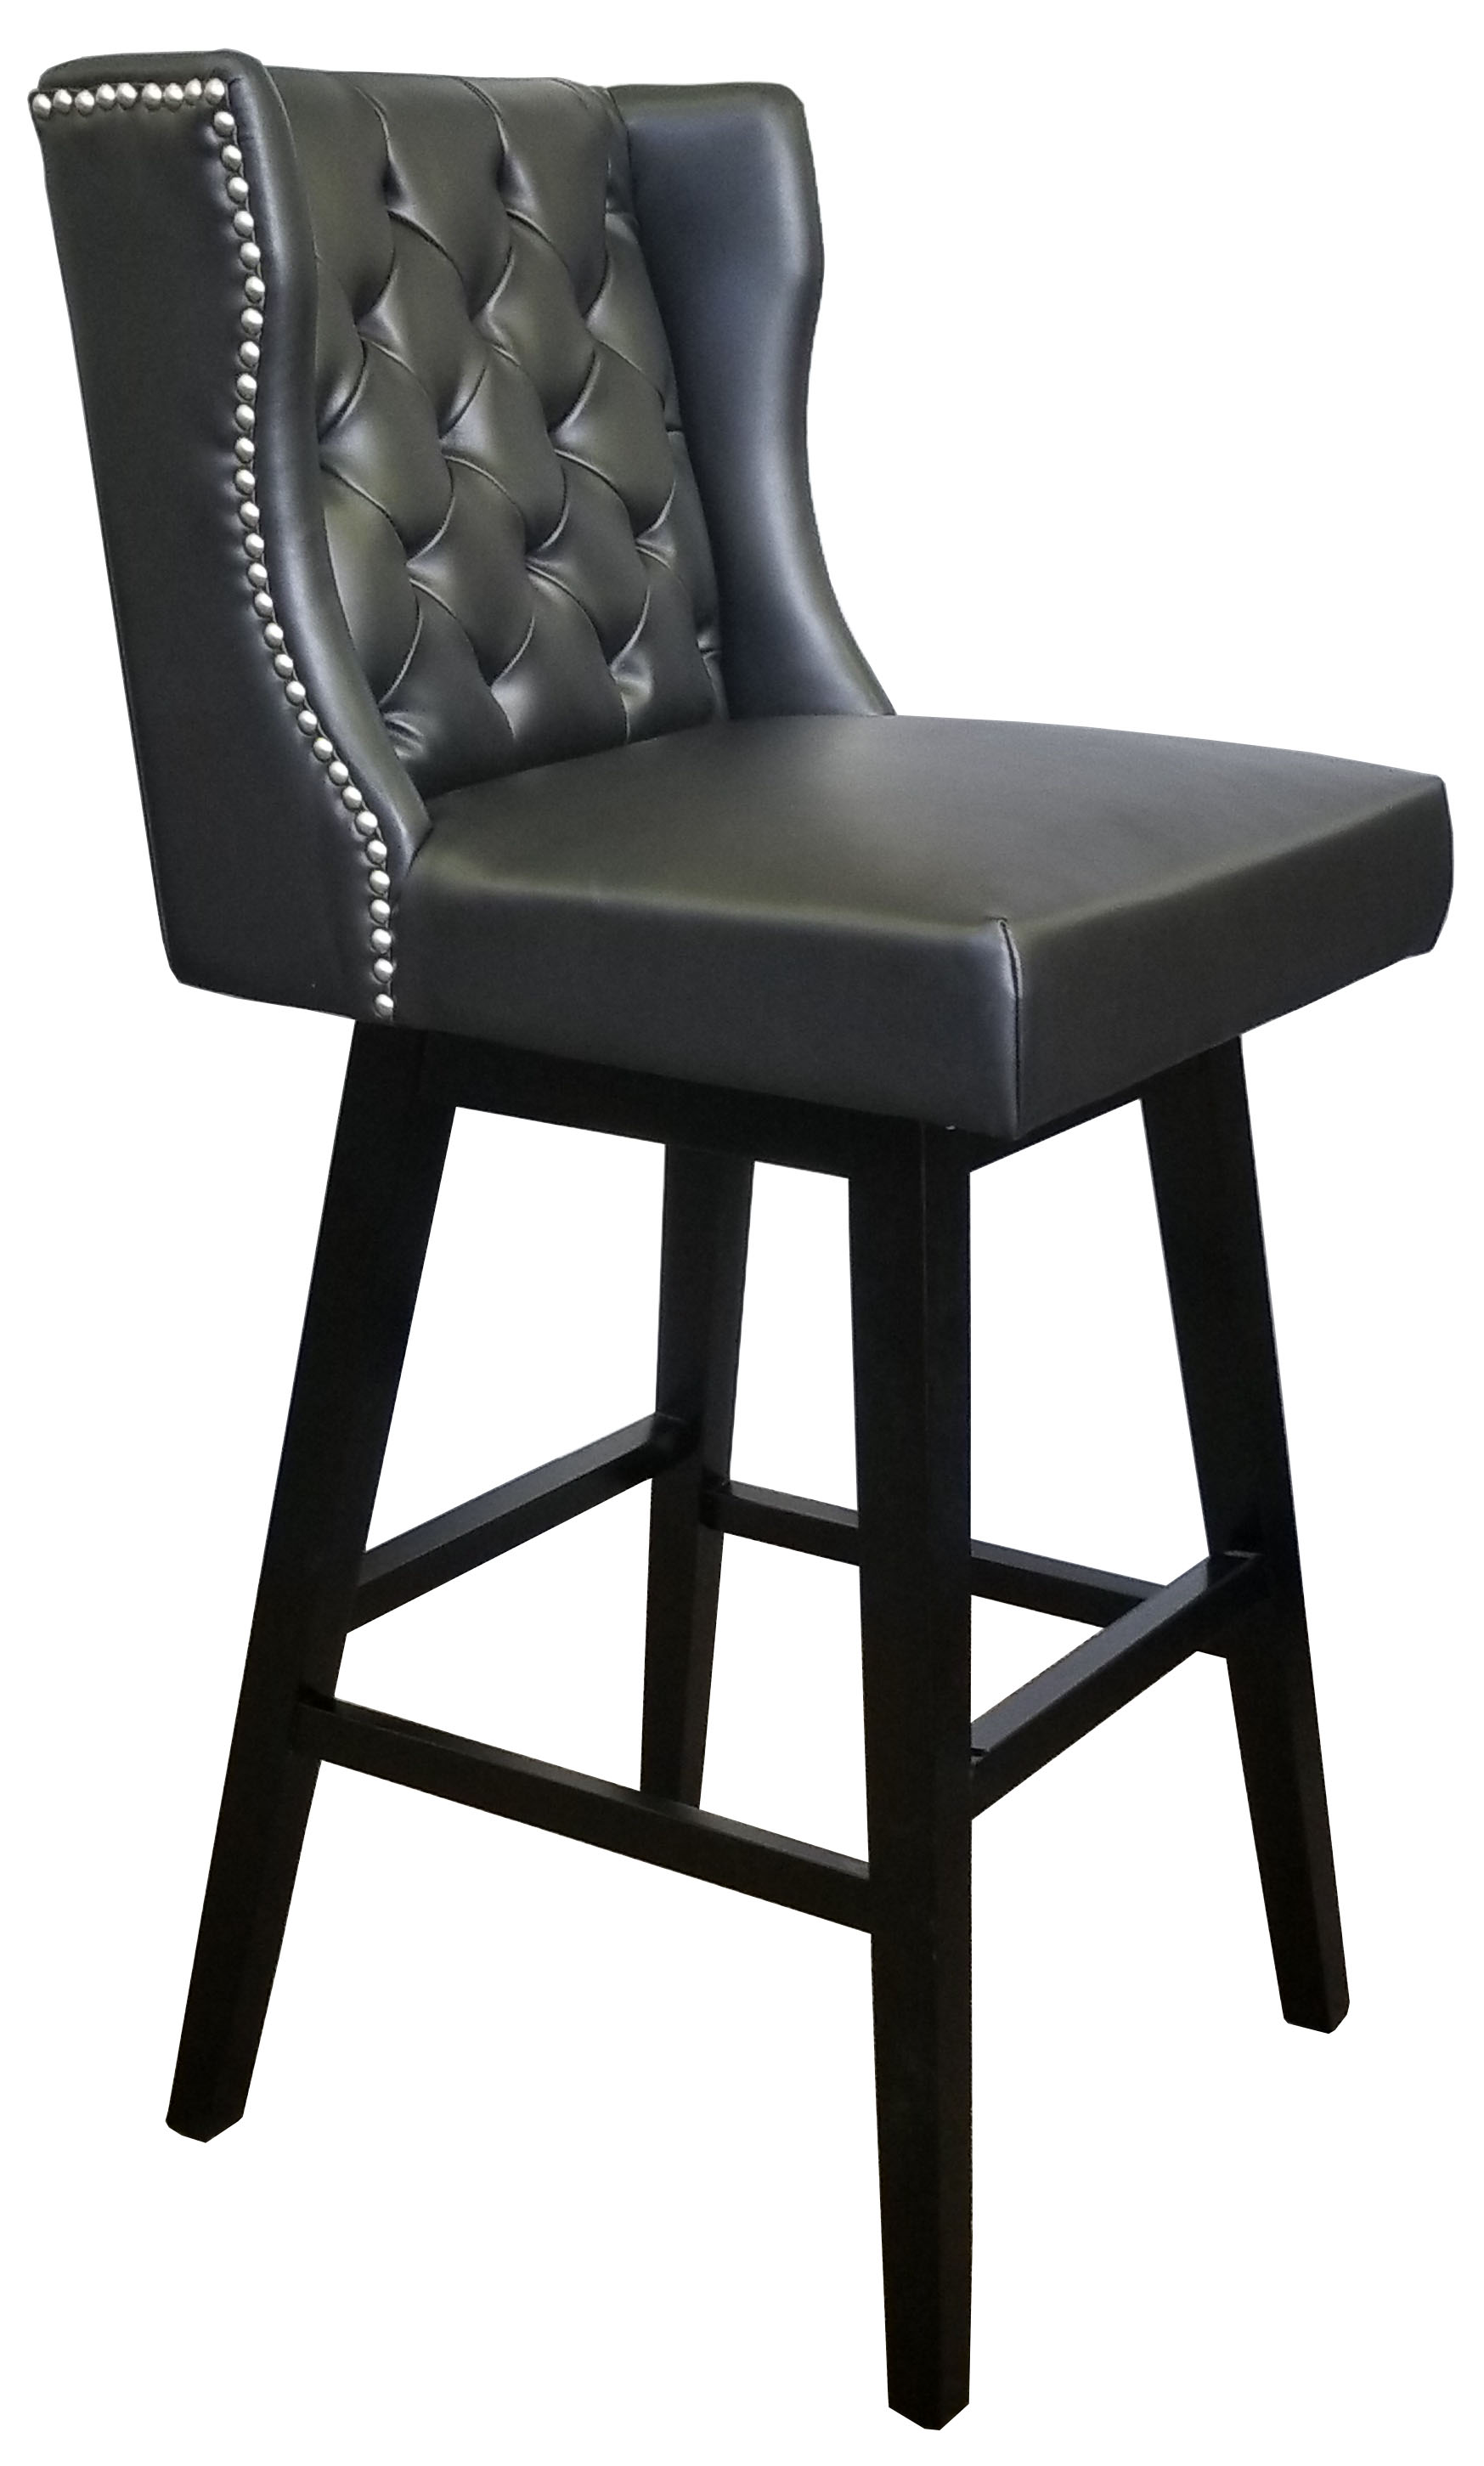 Bar Stools Amp Kitchen Counter Stools R 1553 Black Swivel